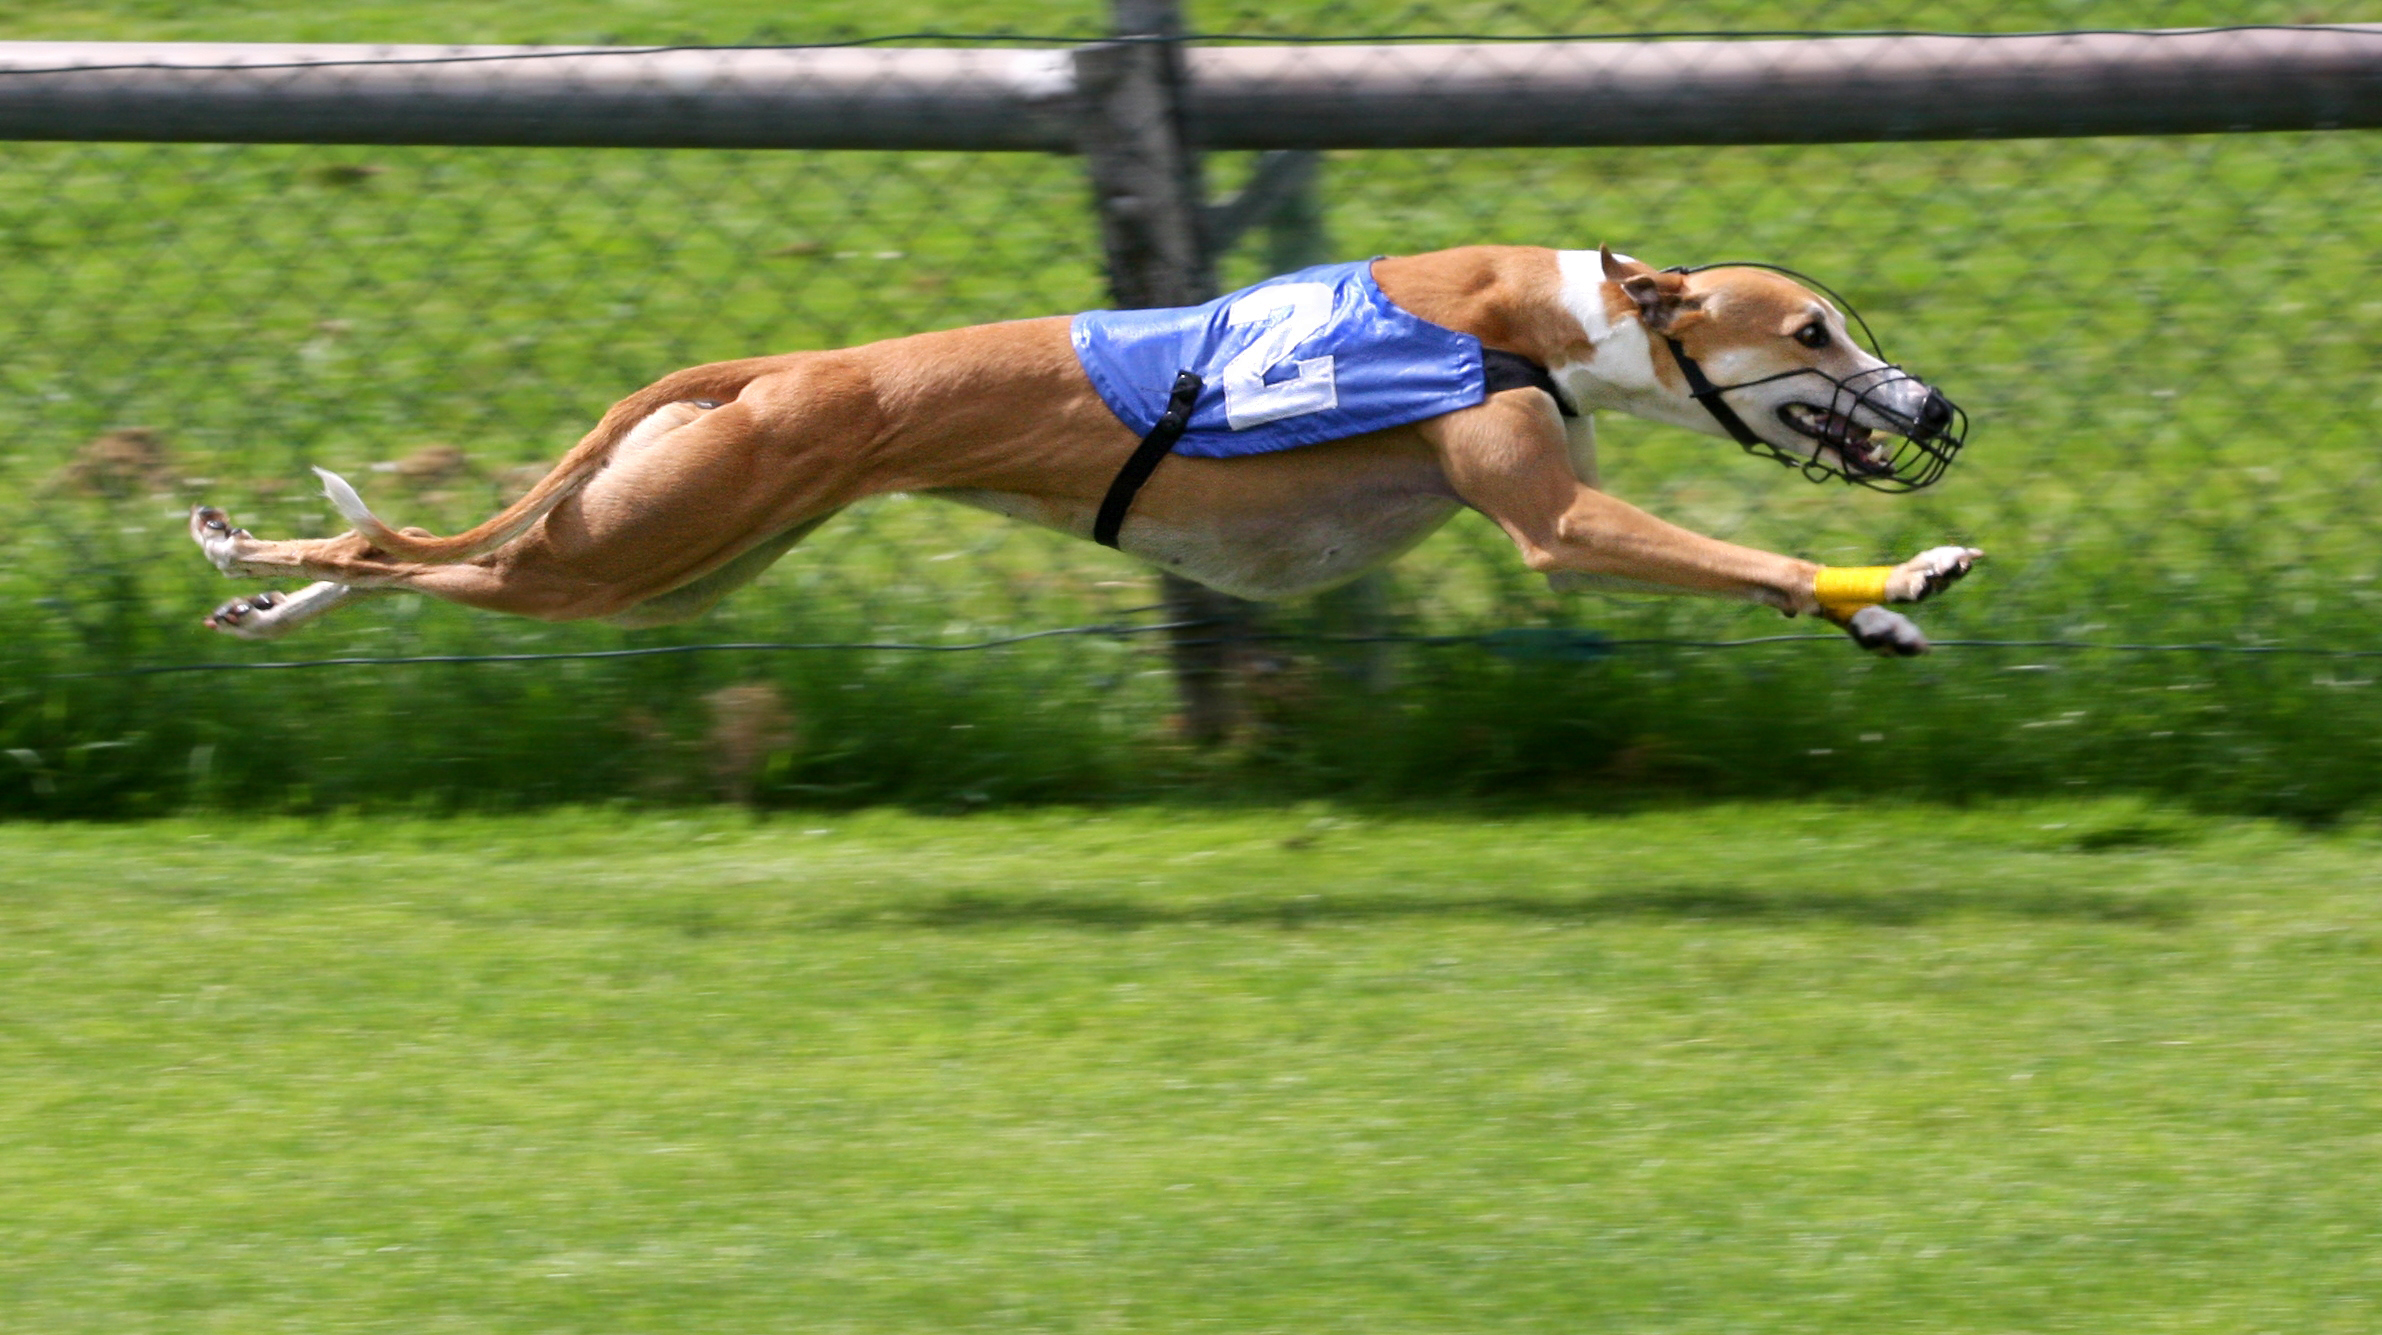 A greyhound racing dog runs, wearing a cape and a muzzle.